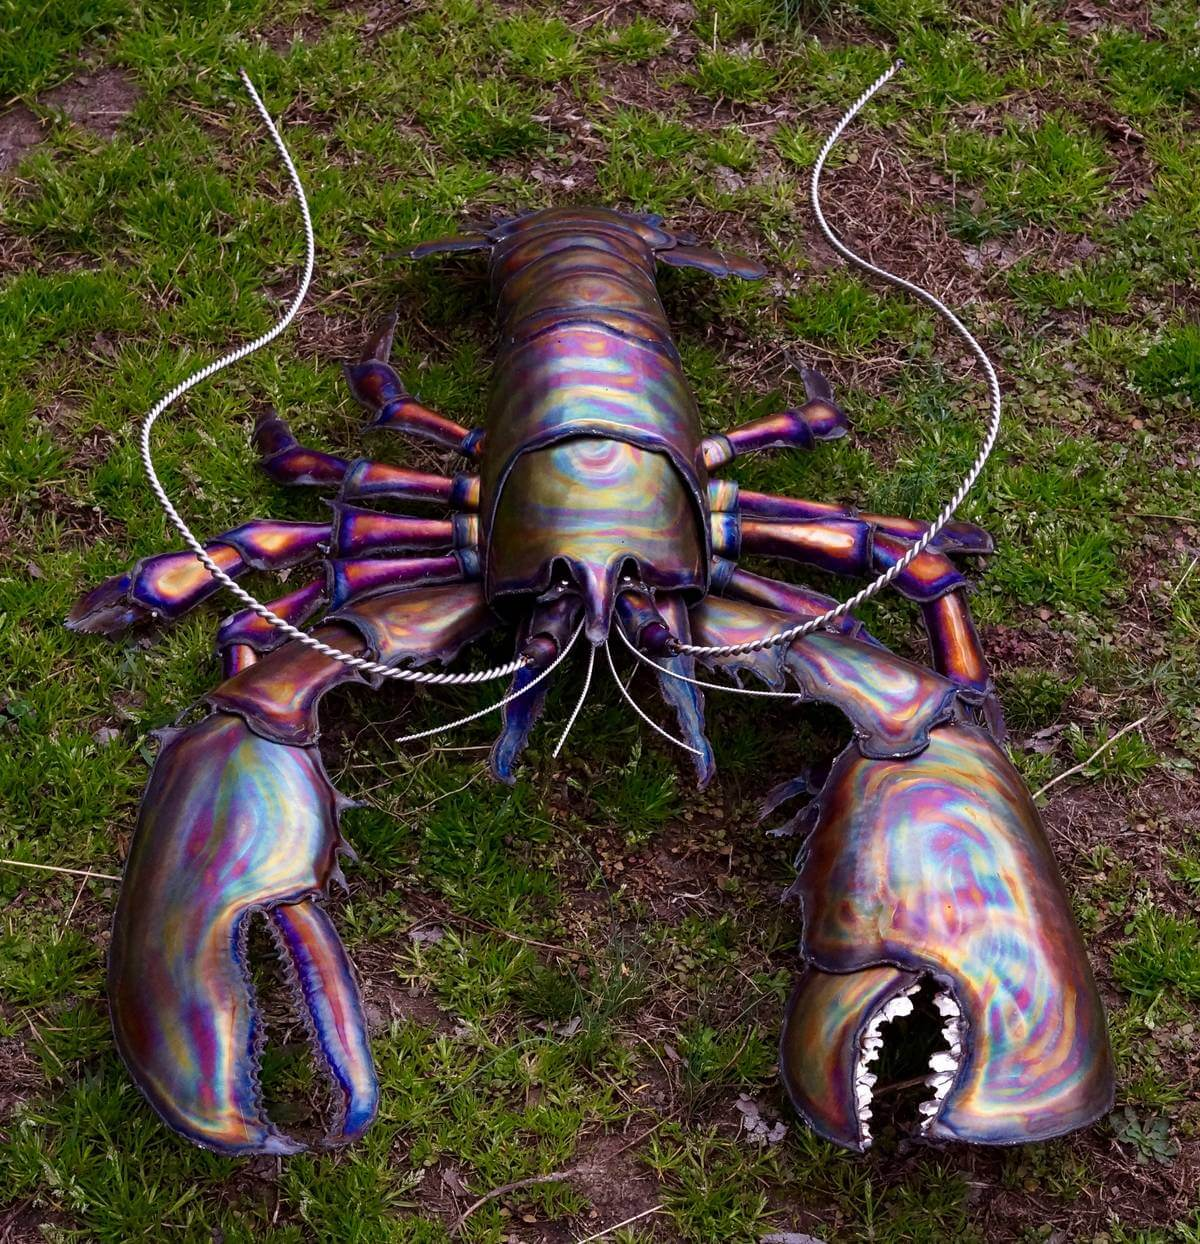 Close up of face of metal striped lobster sculpture